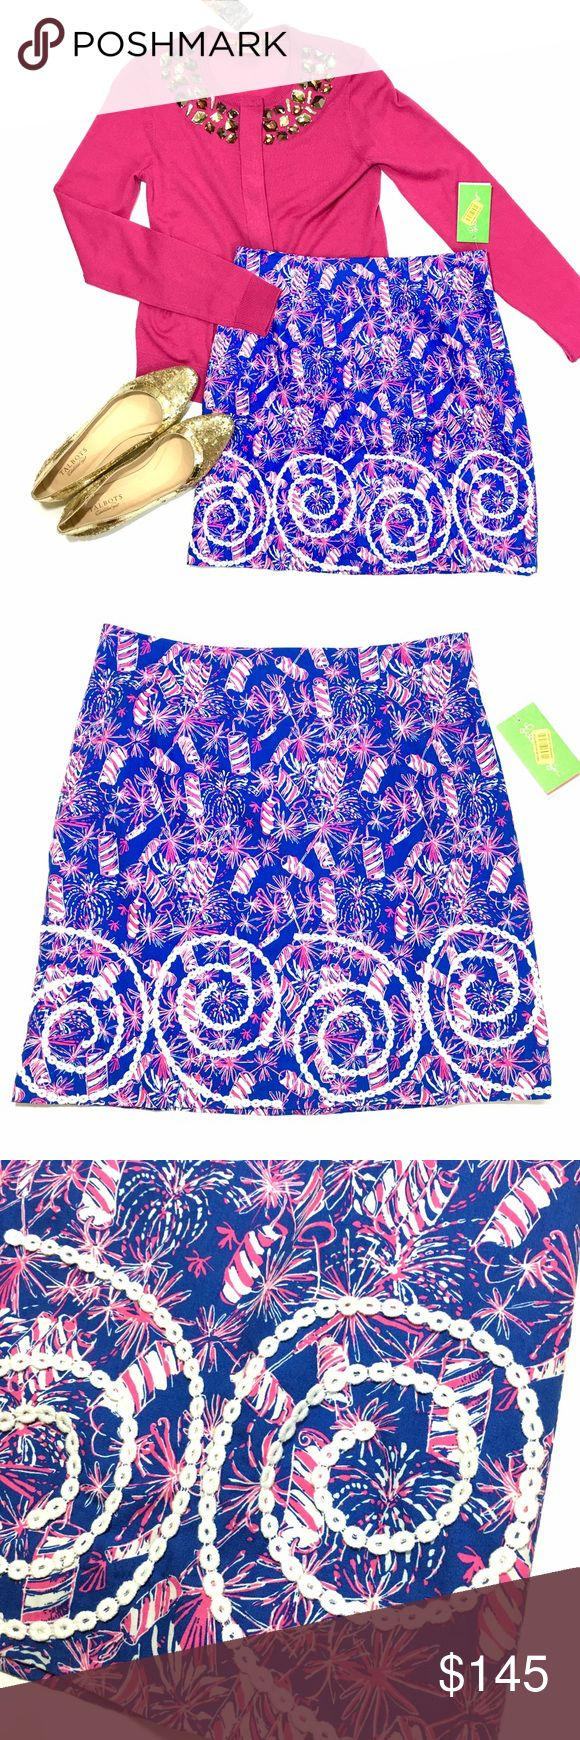 NWT Lilly Pulitzer Firework Skirt Brand new with tags. HOLY GRAIL & HTF Print. Perfect skirt for 4th of JULY!  Lilly Pulitzer Skirts